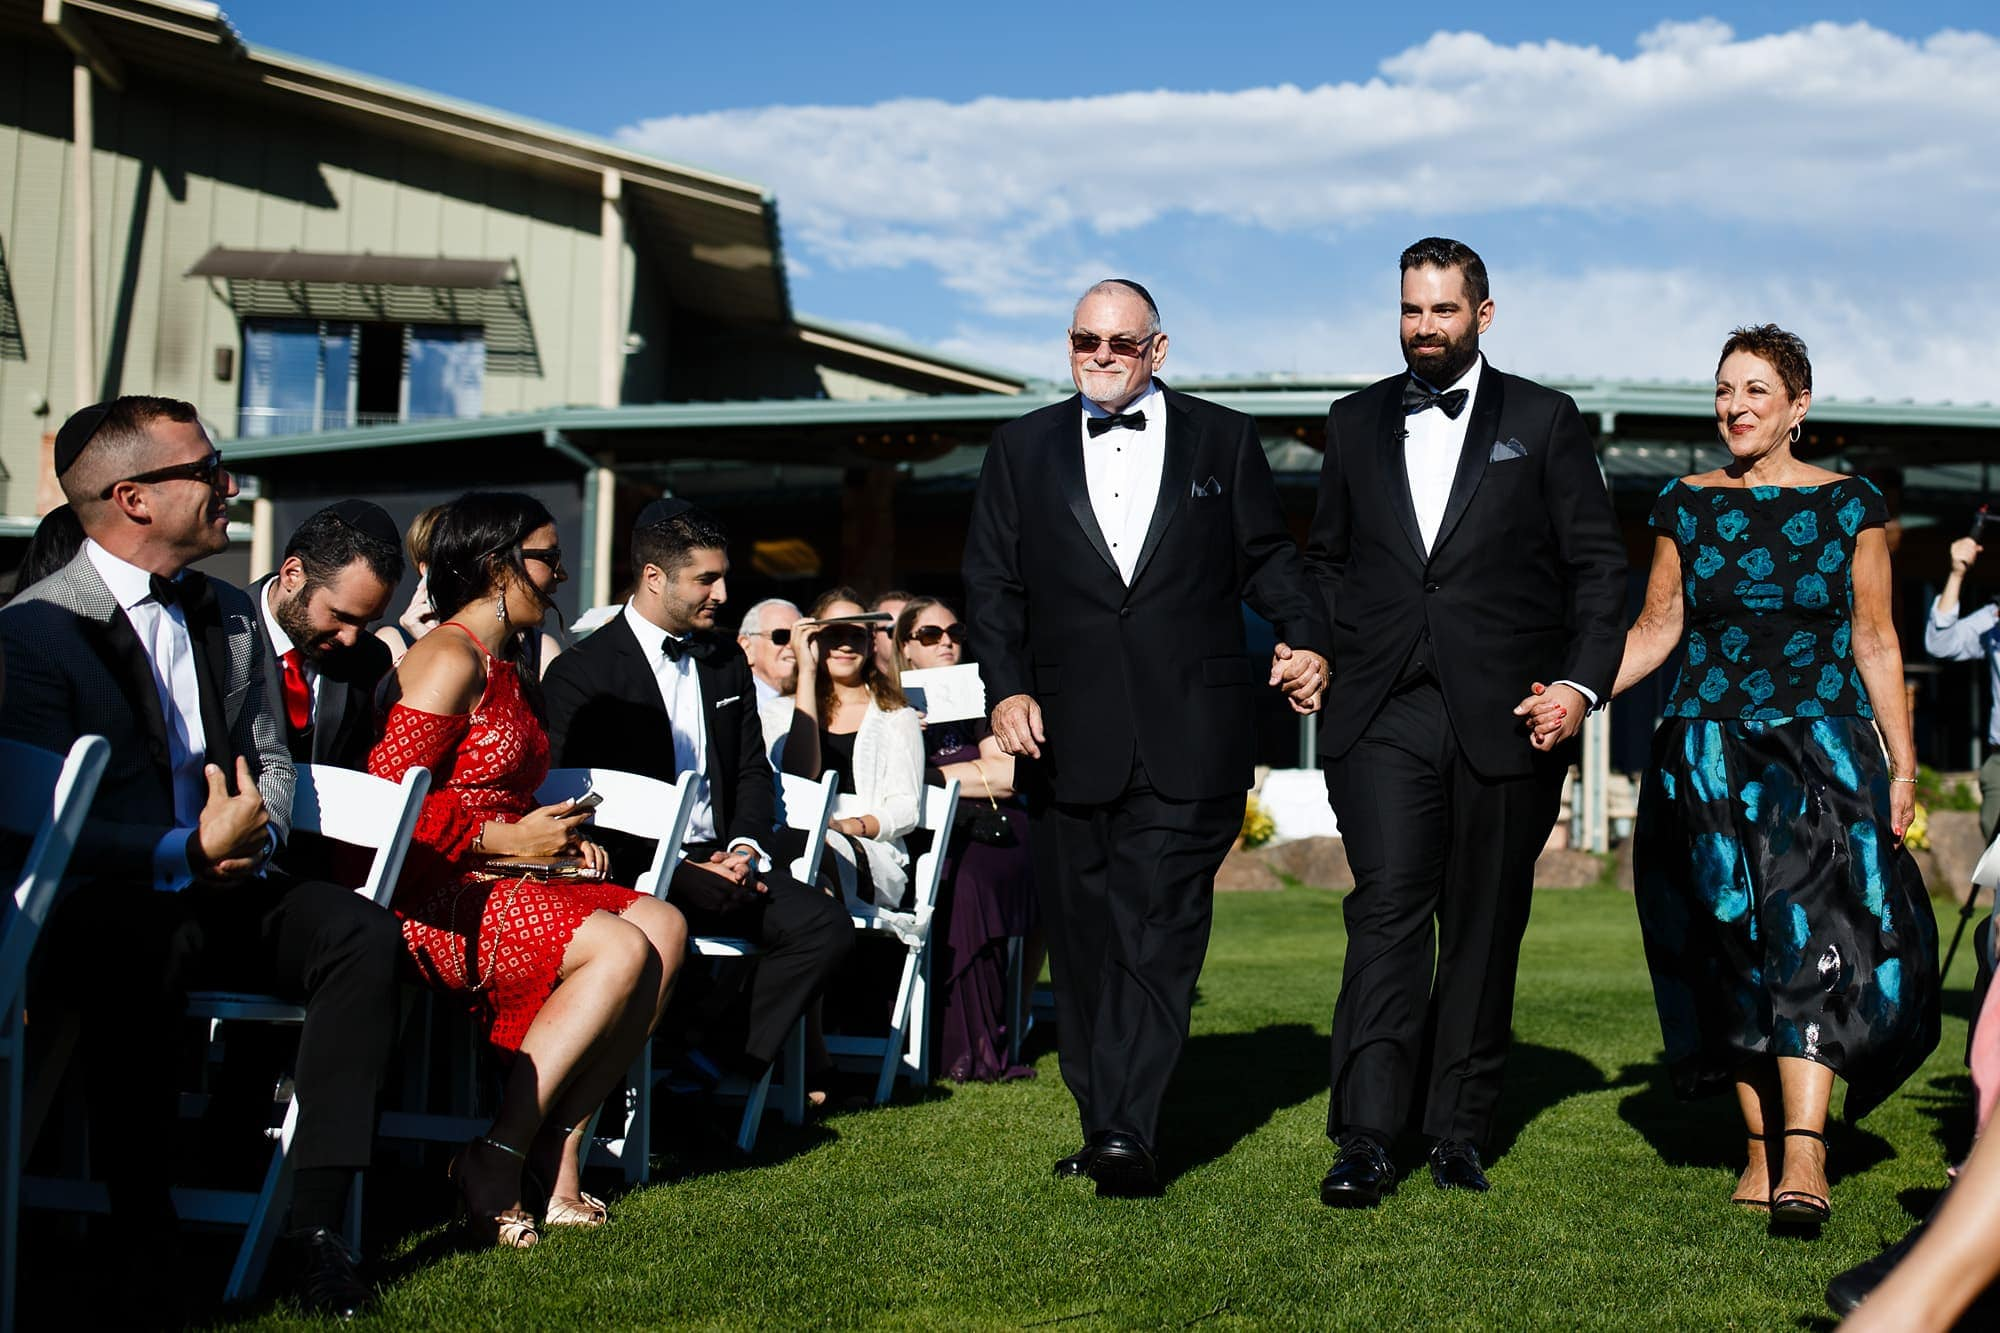 Joshua walks out with his parents during the wedding ceremony